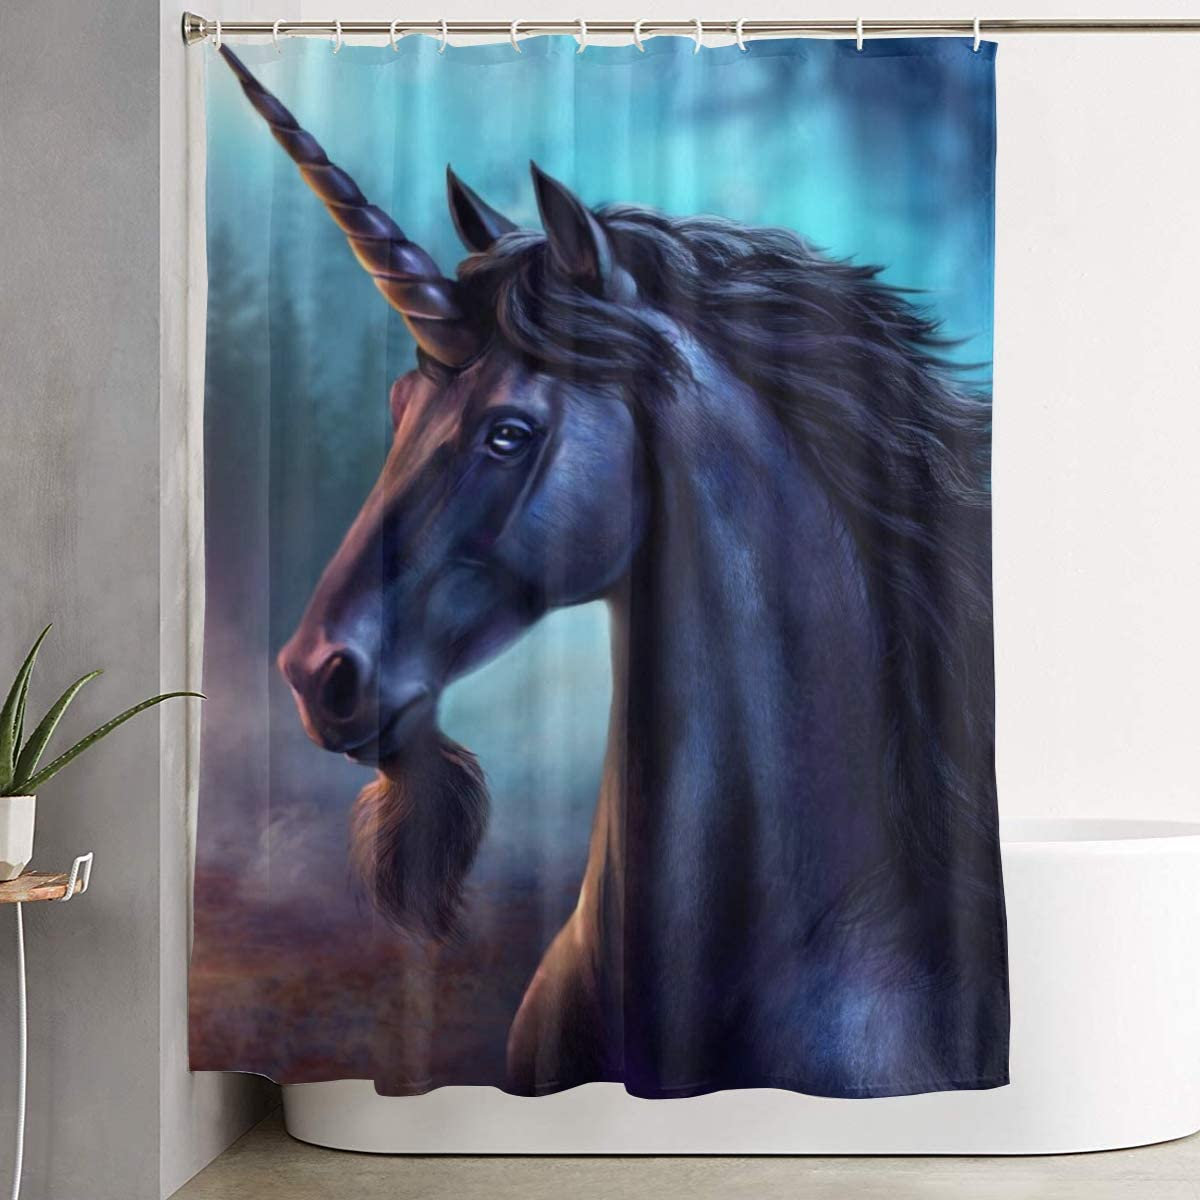 Horses Shower Curtain Waterproof Fabric Bathroom Decor 60x70inch Various Size